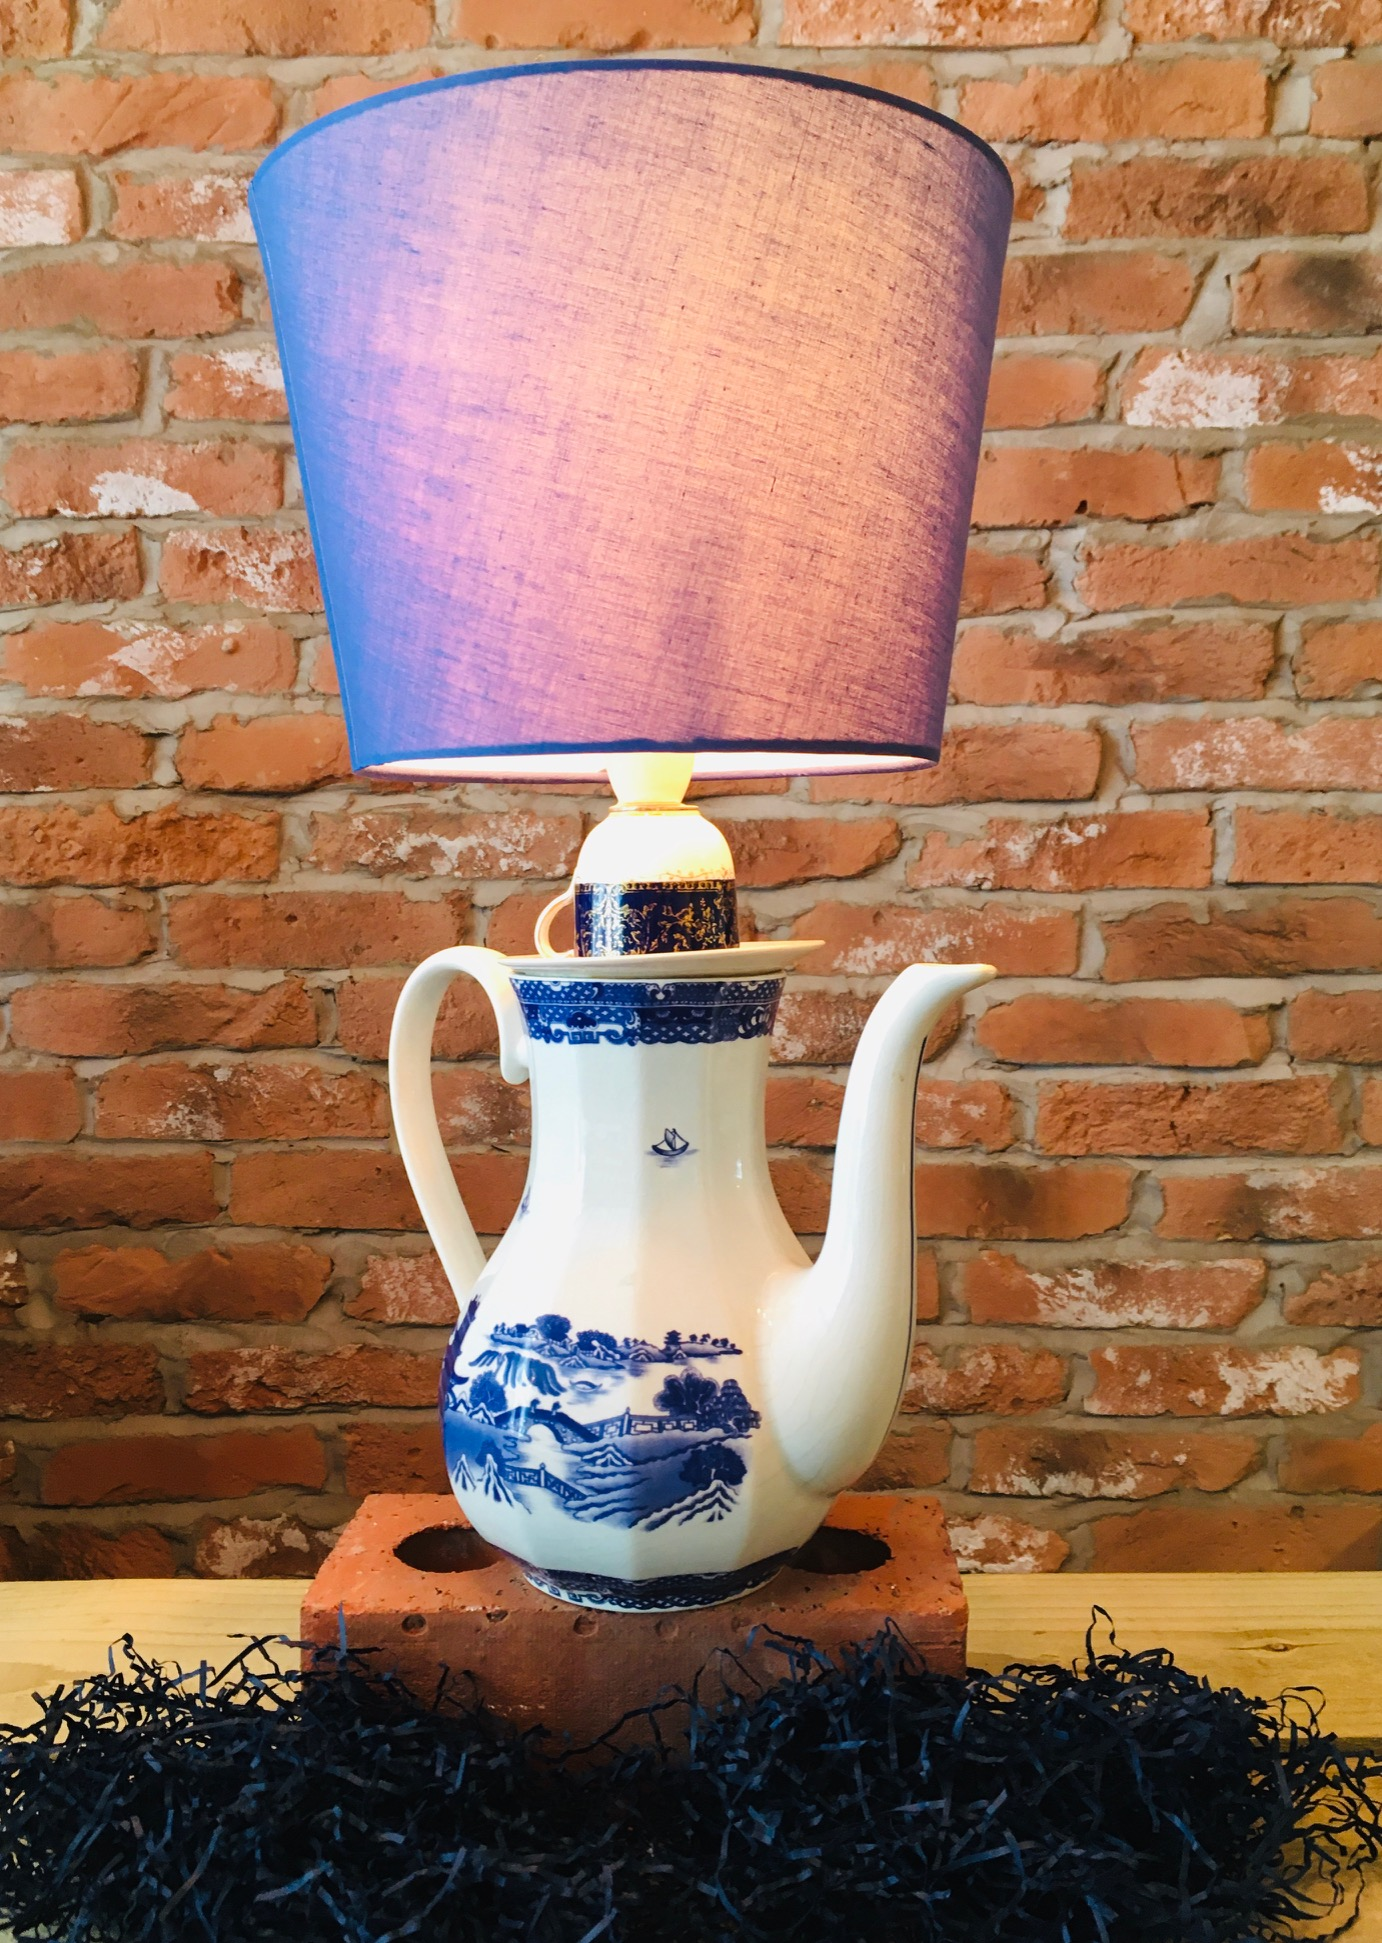 Ringtons Coffee Pot & Wedgwood Lamp